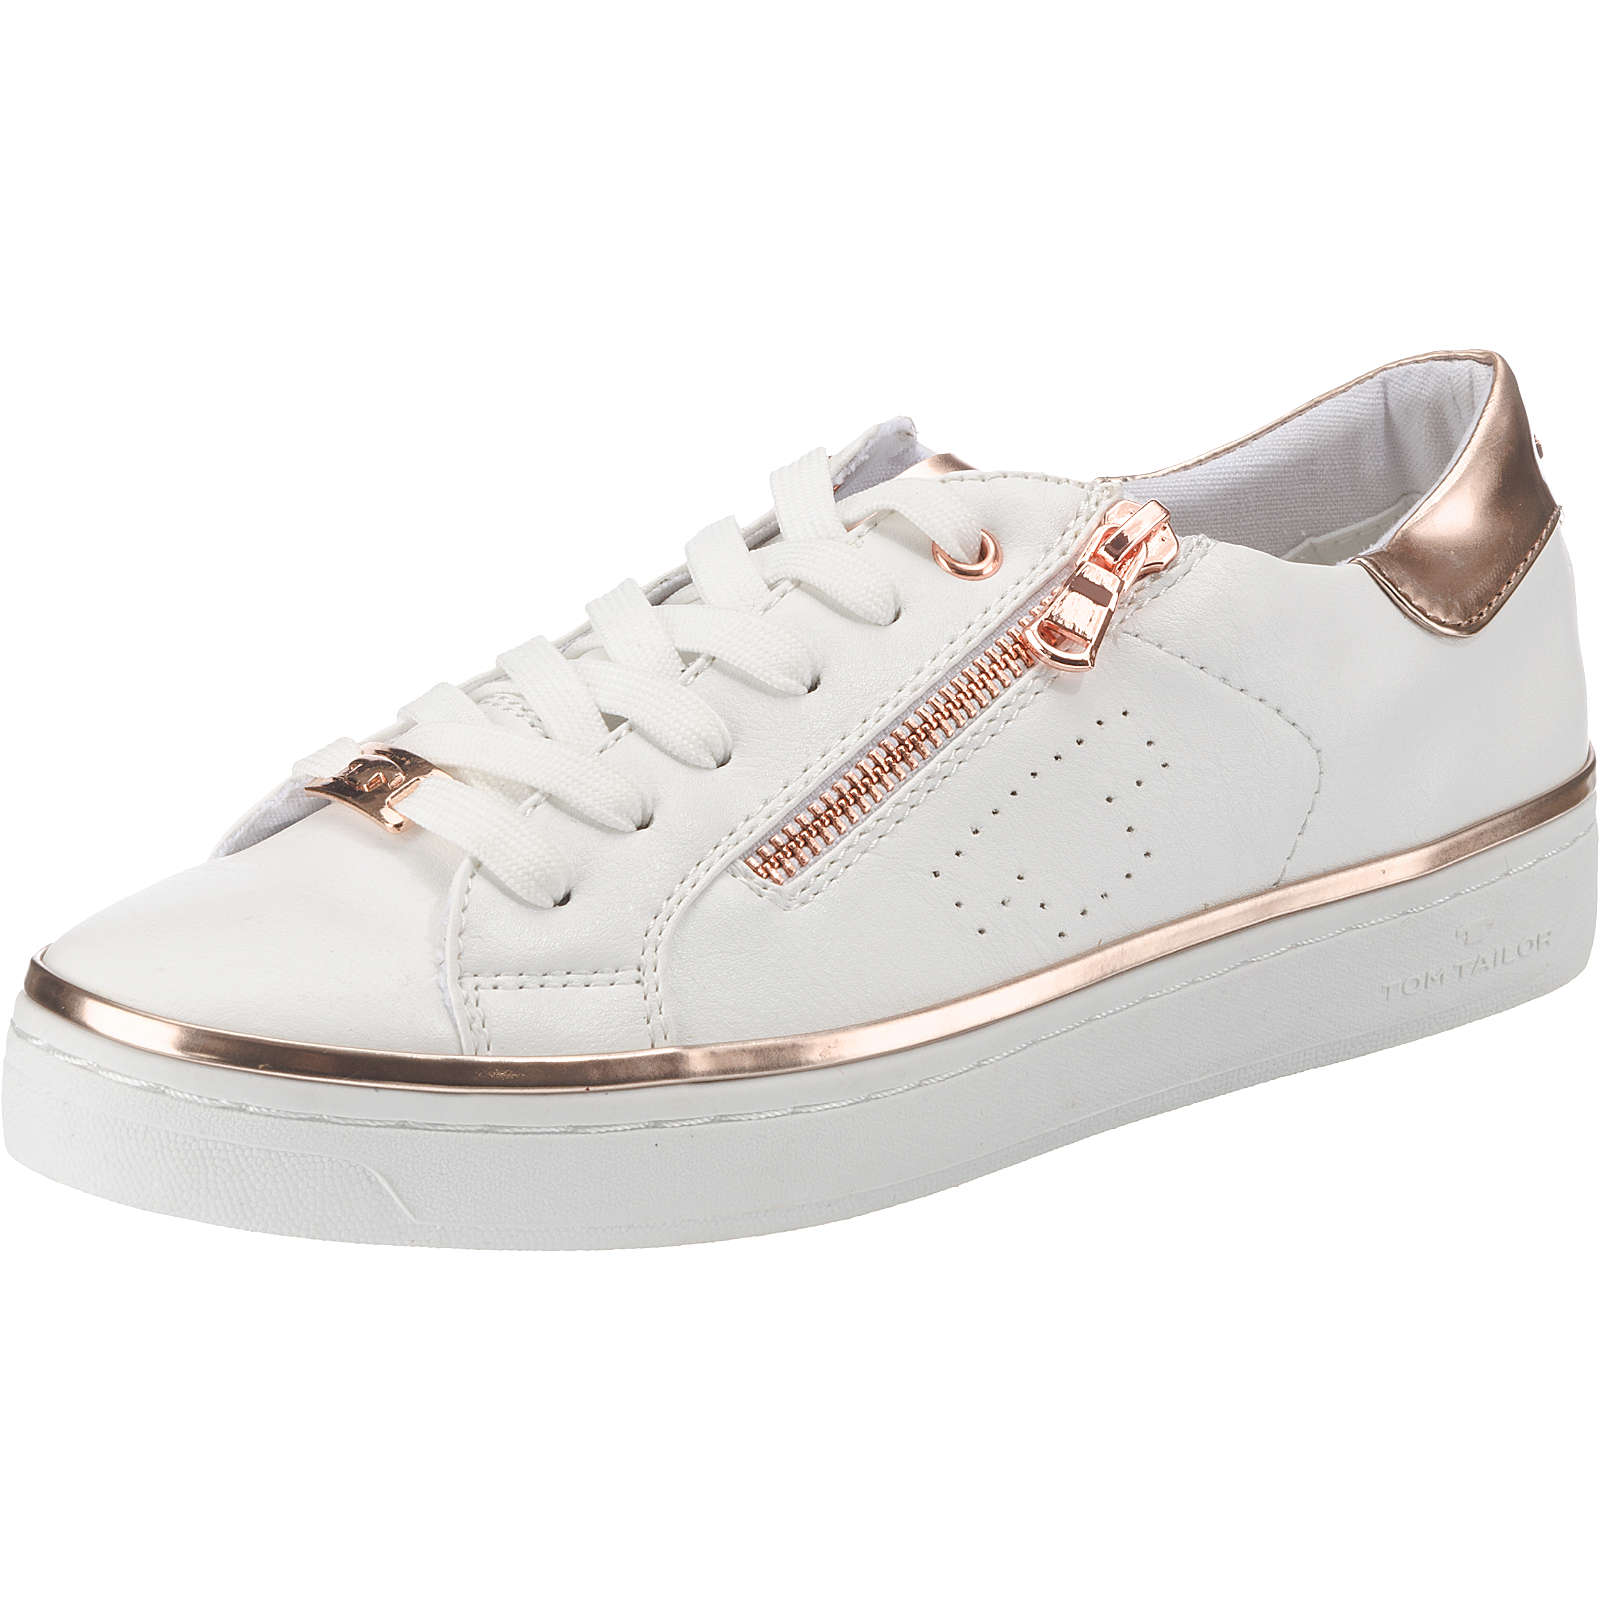 TOM TAILOR Sneakers Low weiß Damen Gr. 41